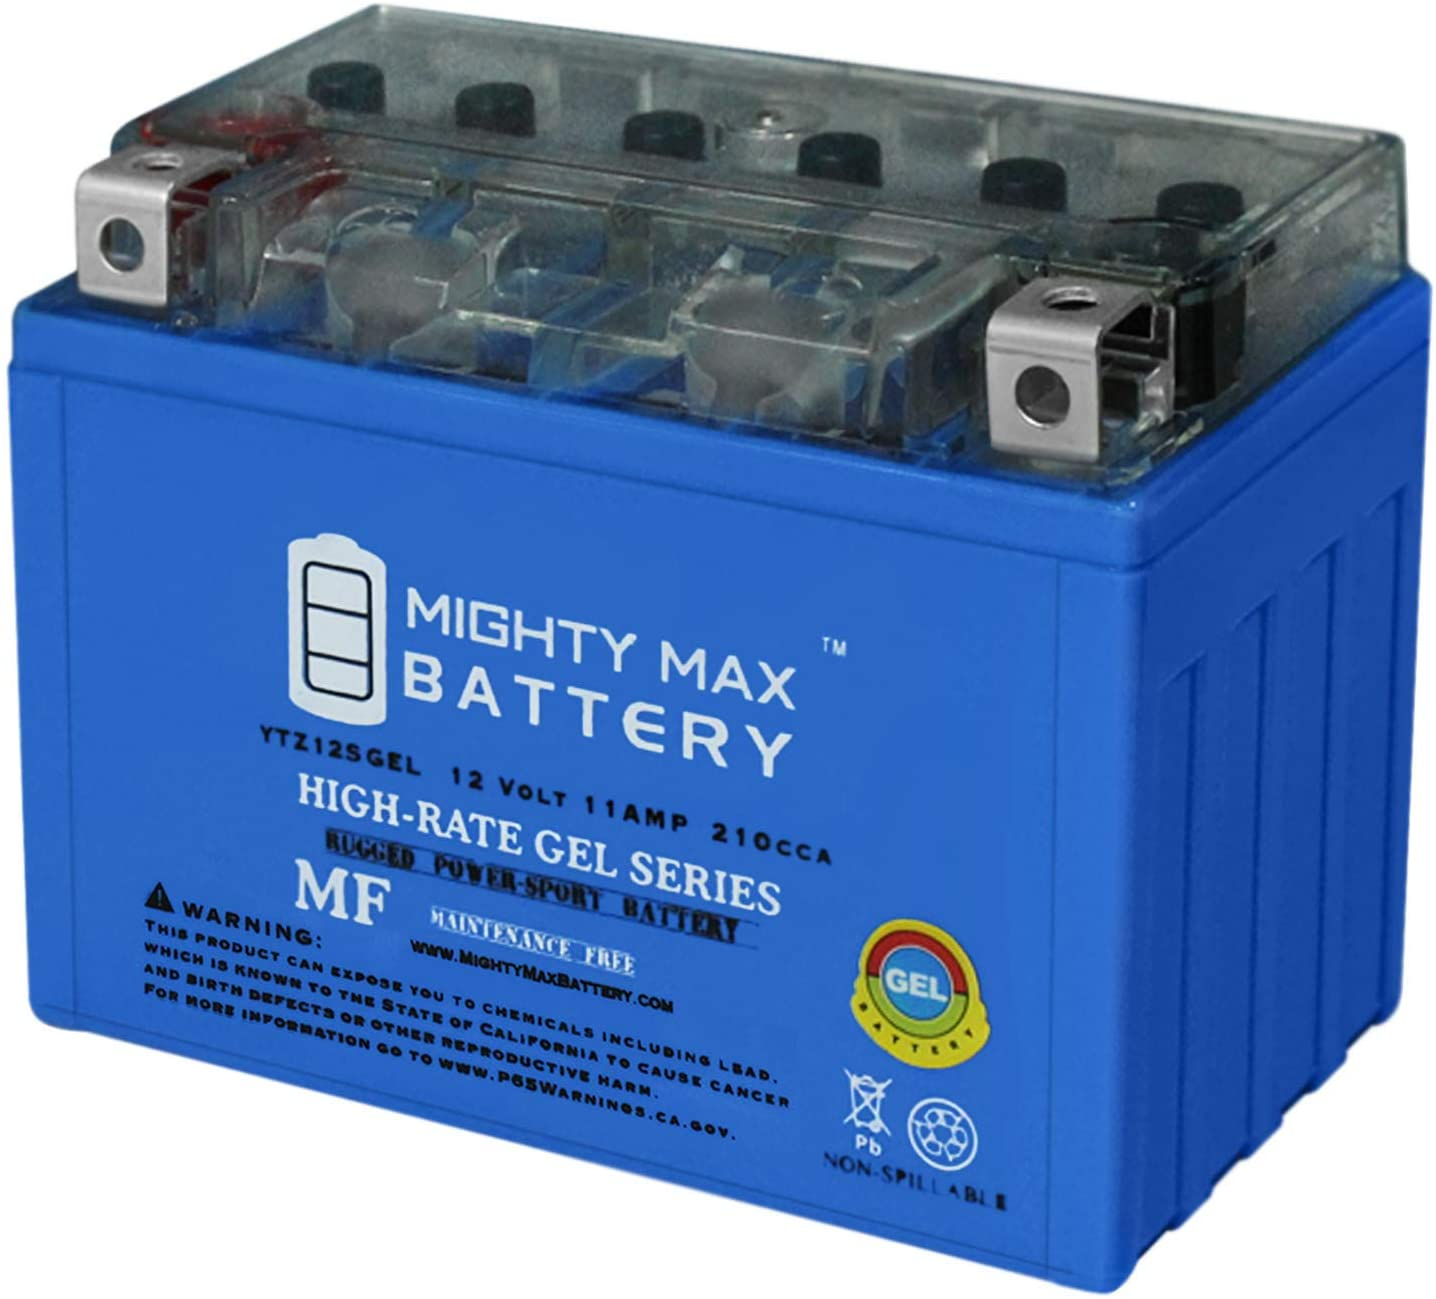 Mighty Max Battery 12V 11AH 210CCA 1000 Gel RV Store Honda Manufacturer regenerated product for